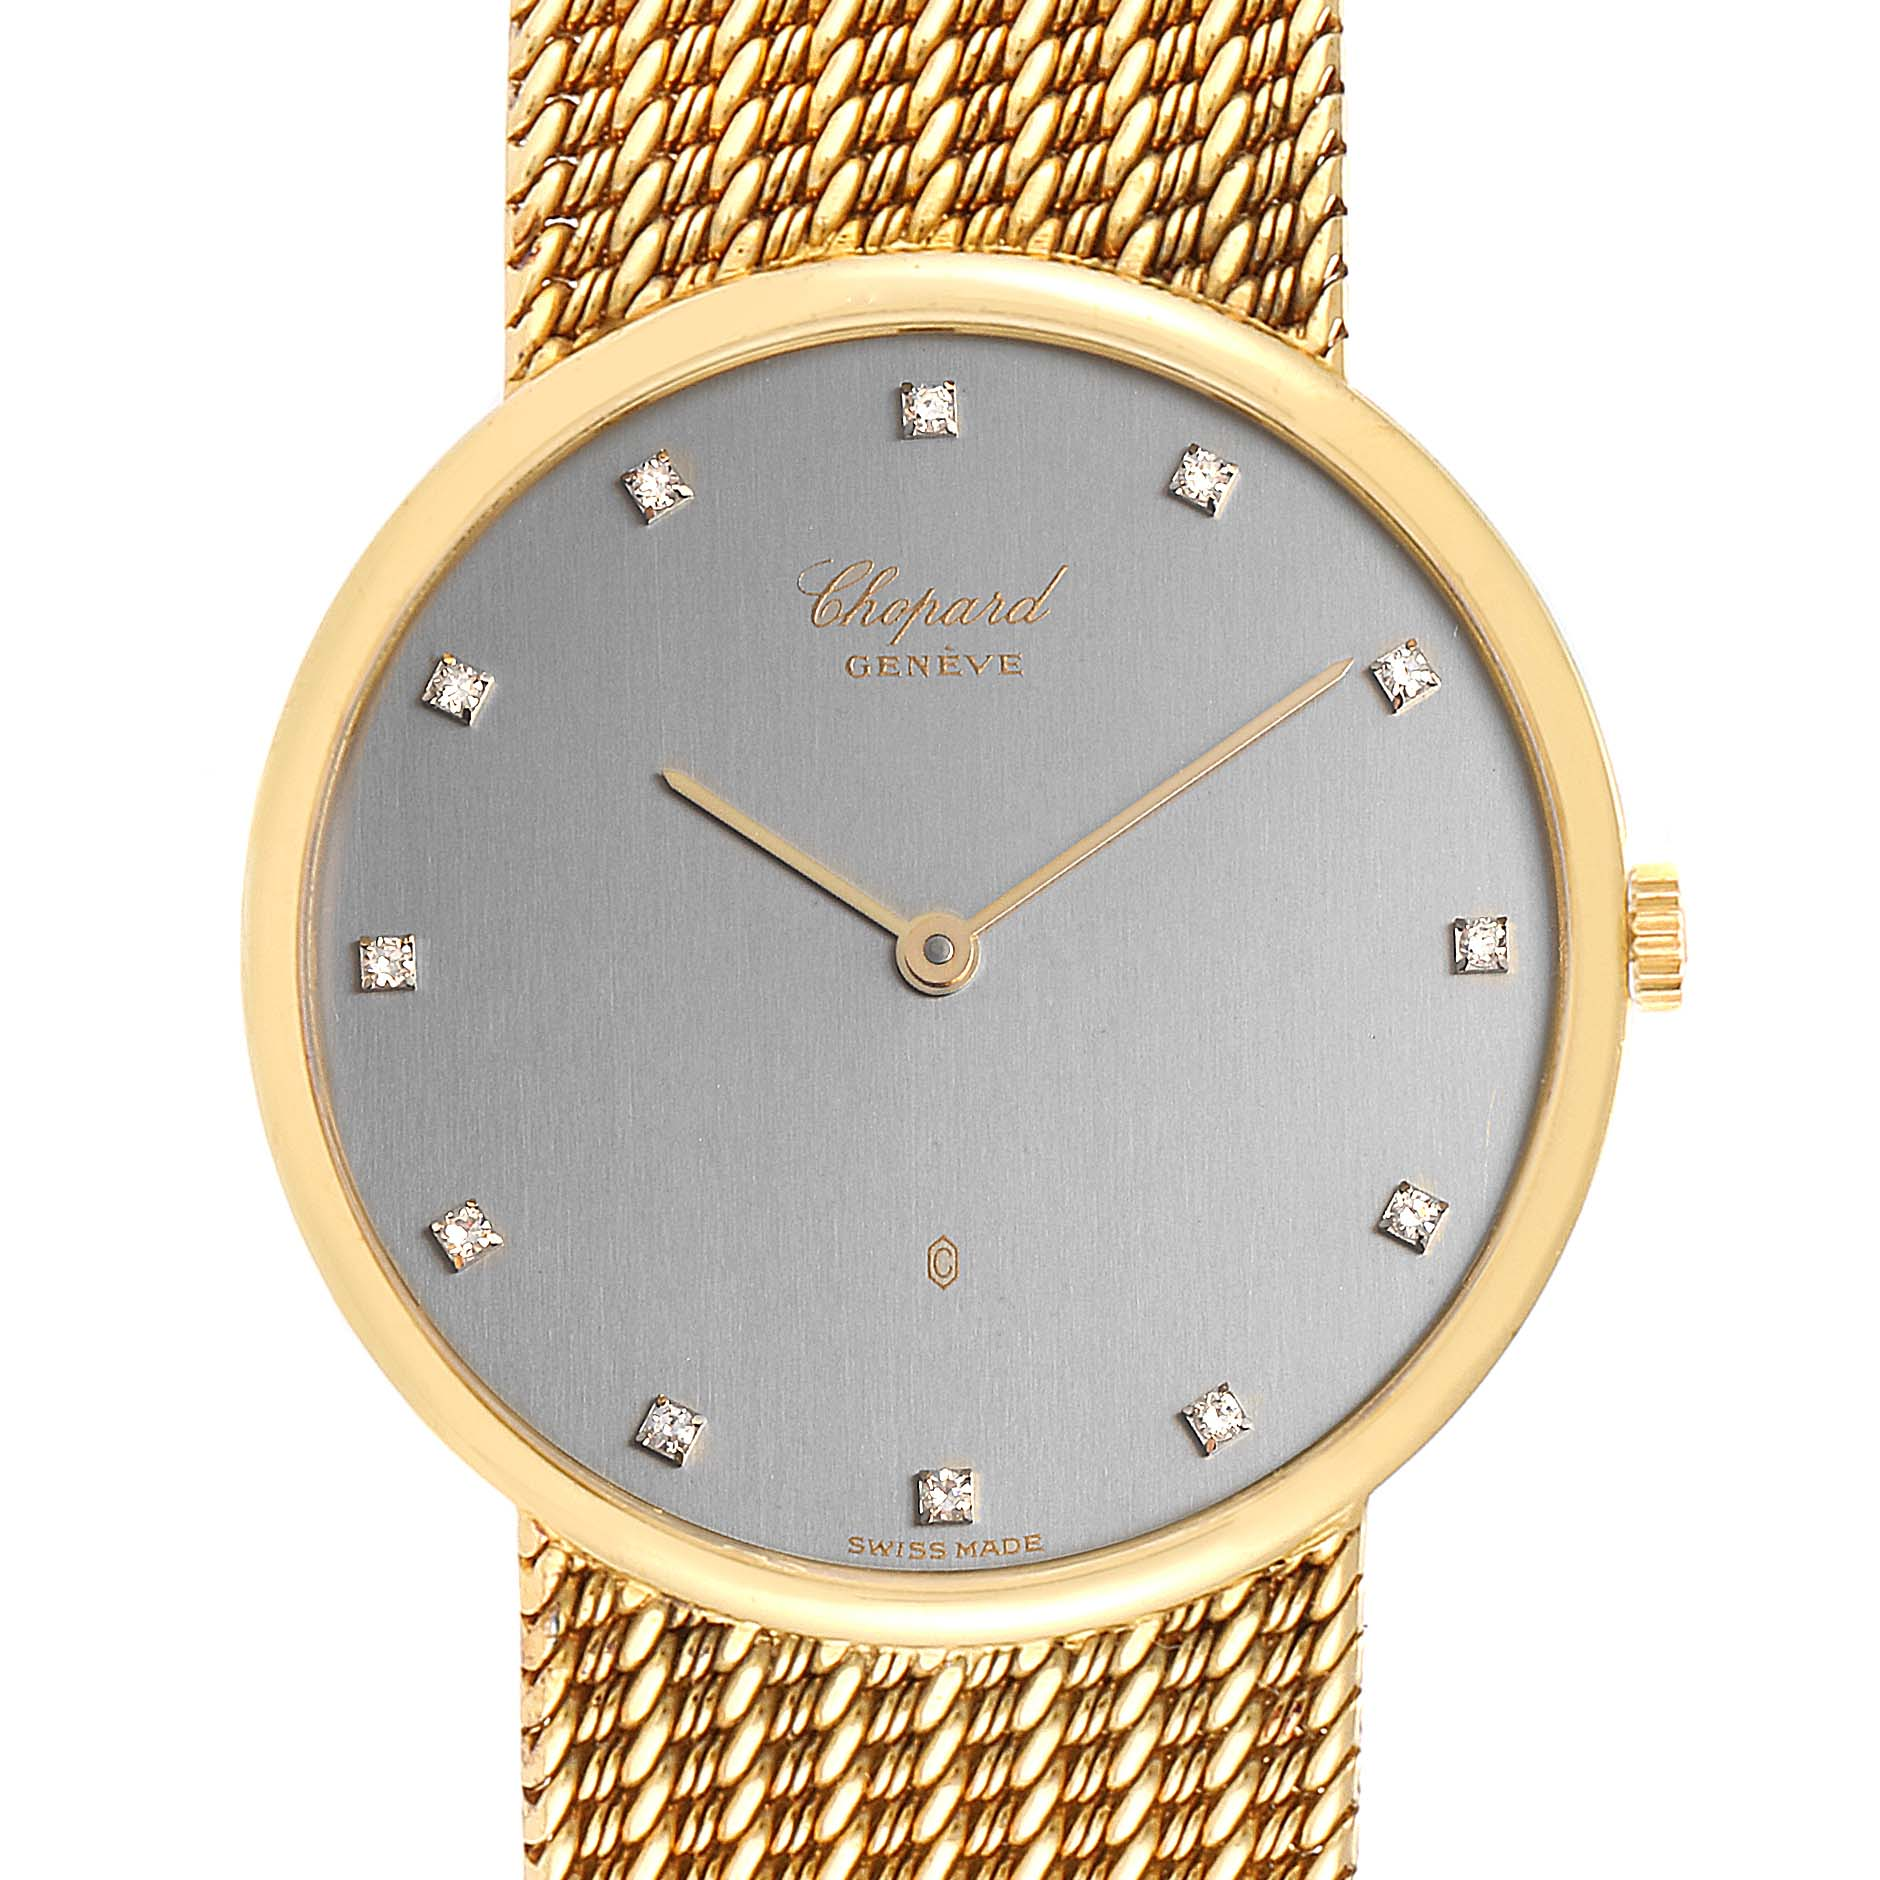 Chopard Classique 18K Yellow Gold Quartz Mens Watch 1091 SwissWatchExpo